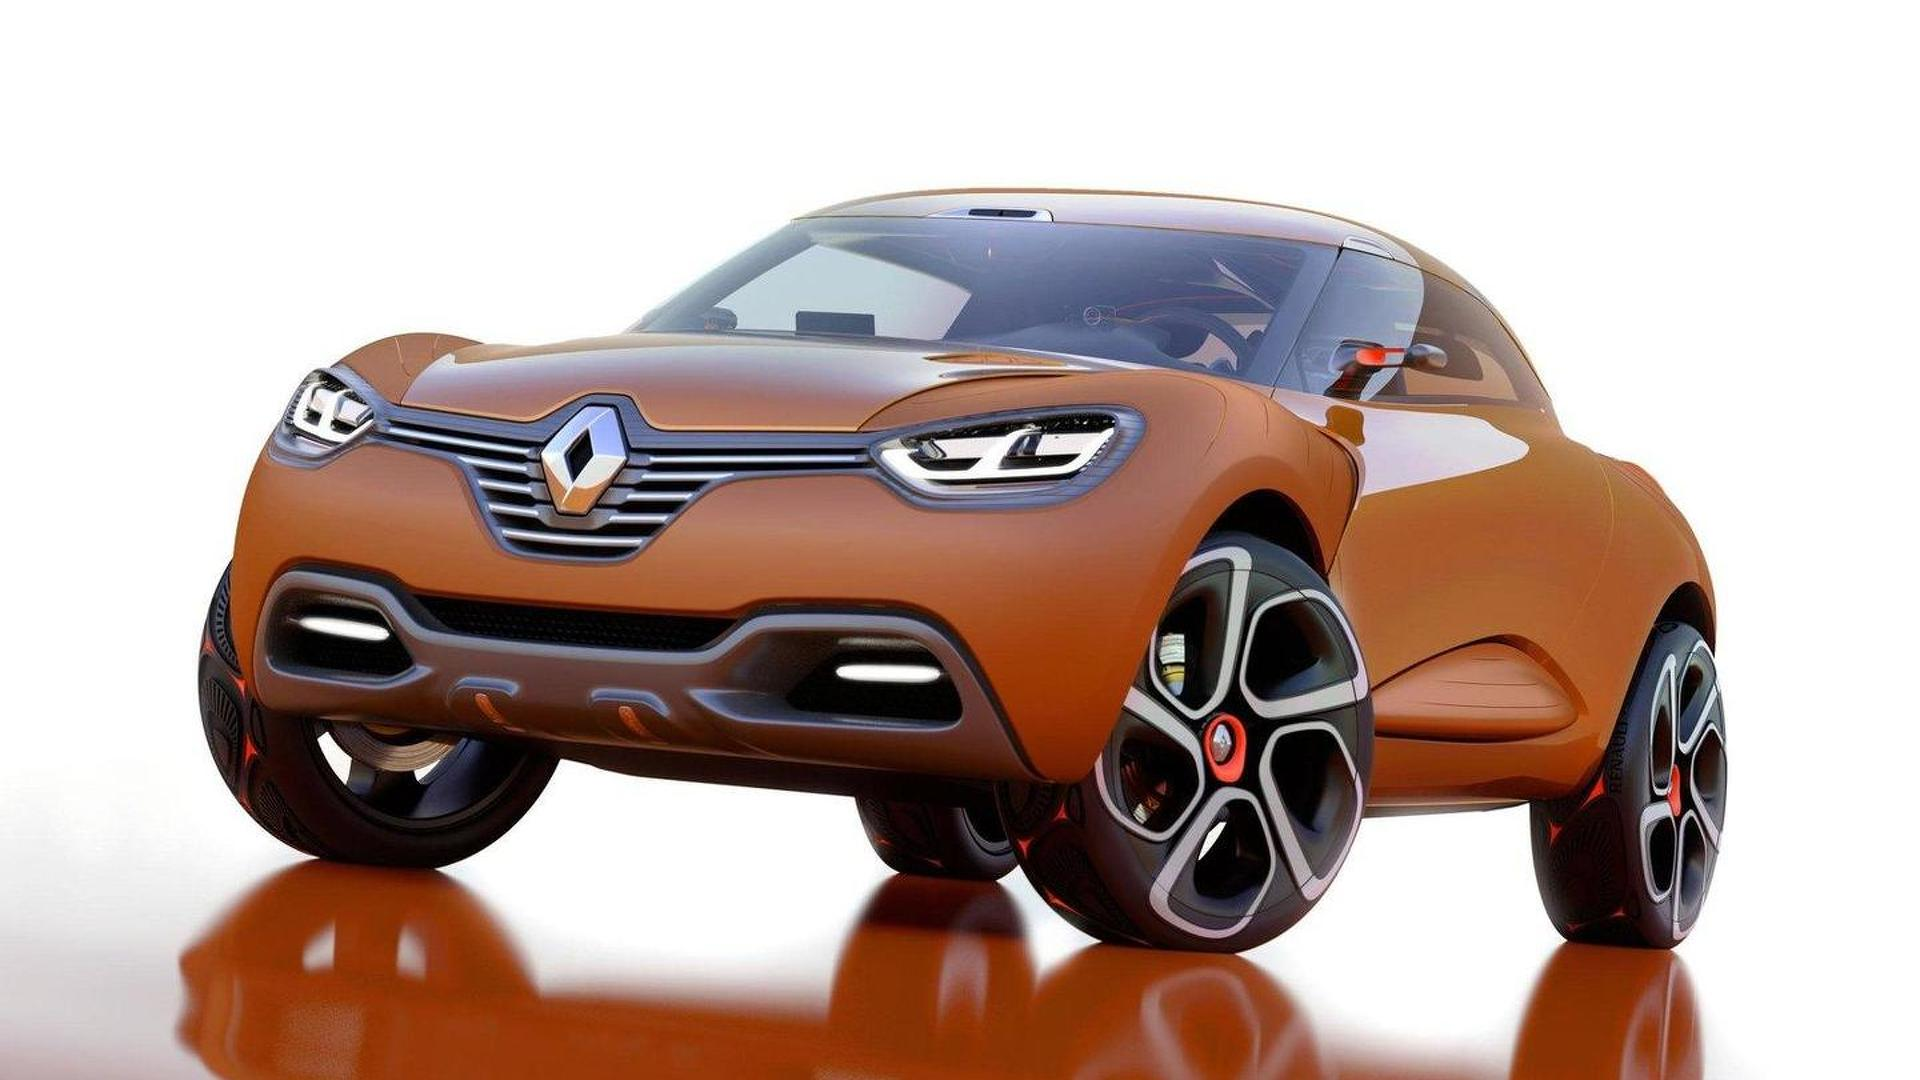 Renault to offer rebadged Nissan Juke - report